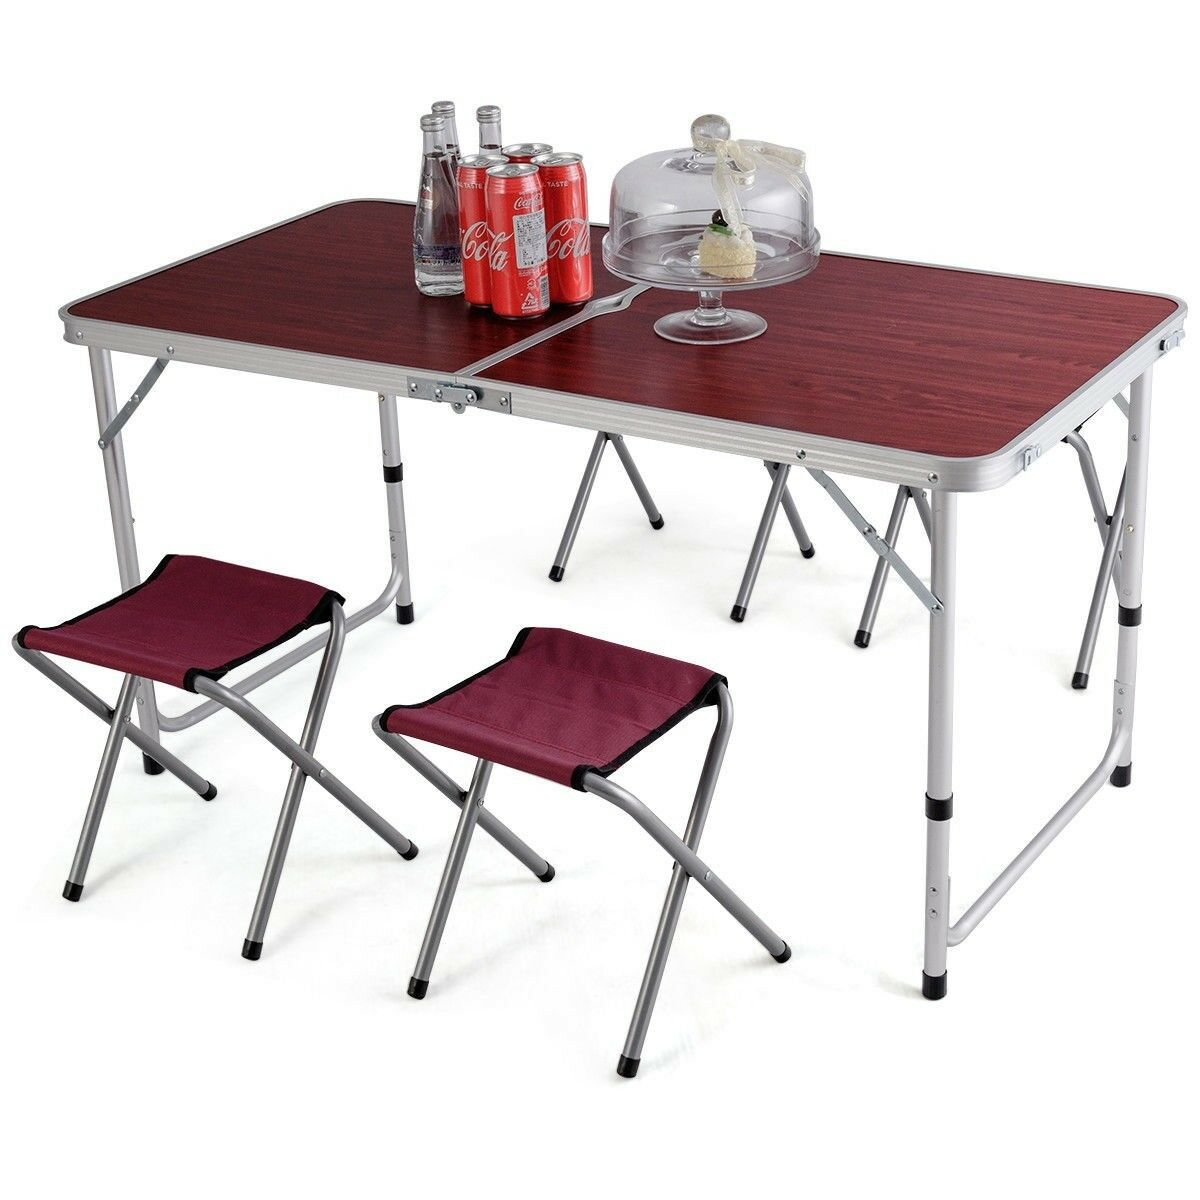 Aluminum Folding Camping Table with 4 Chairs Stools For Camping BBQ Picnic Beach